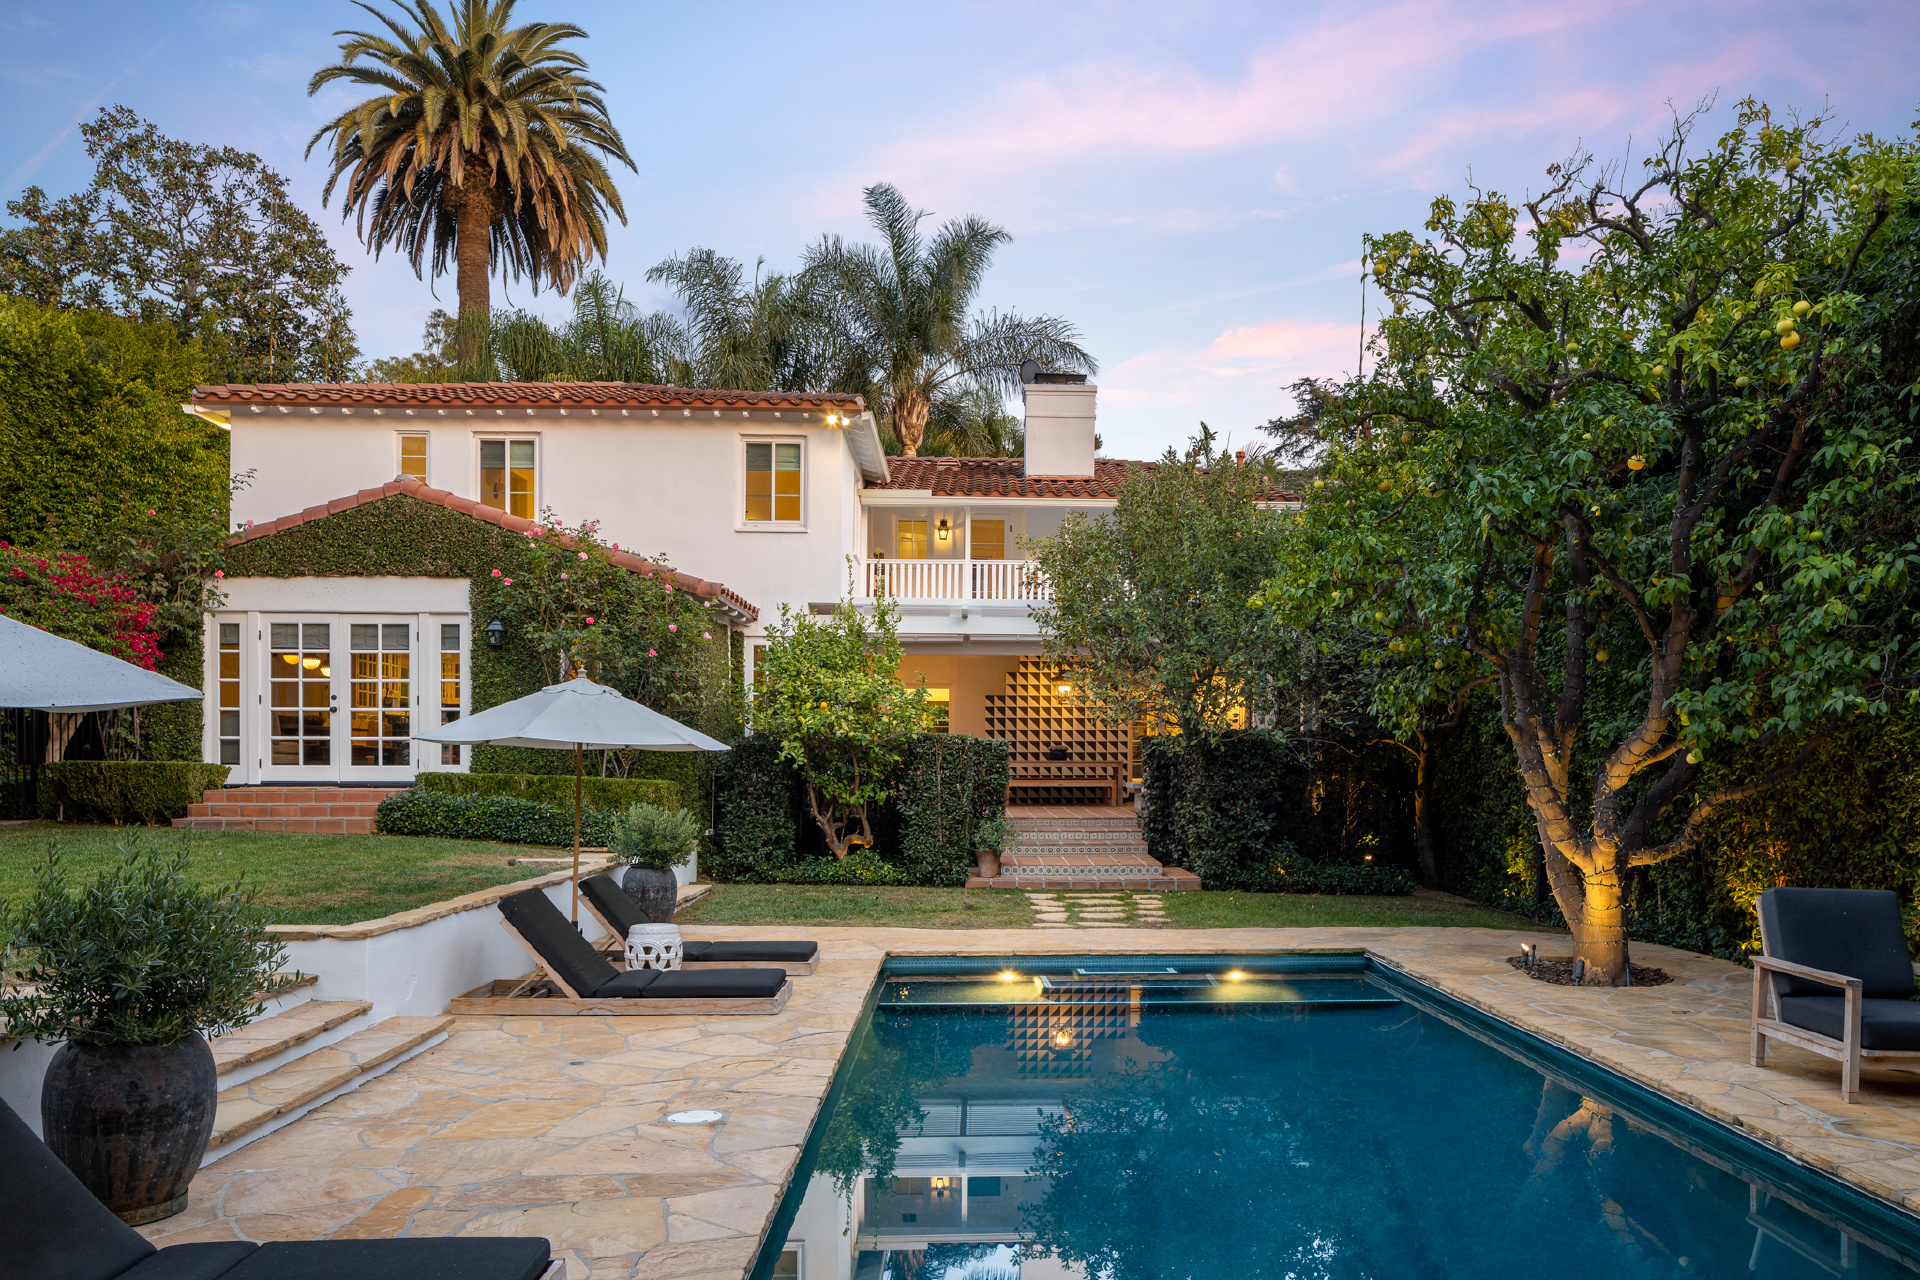 1355 North Doheny Drive     |     Sunset Strip Los Angeles  CA  | Jonah Wilson